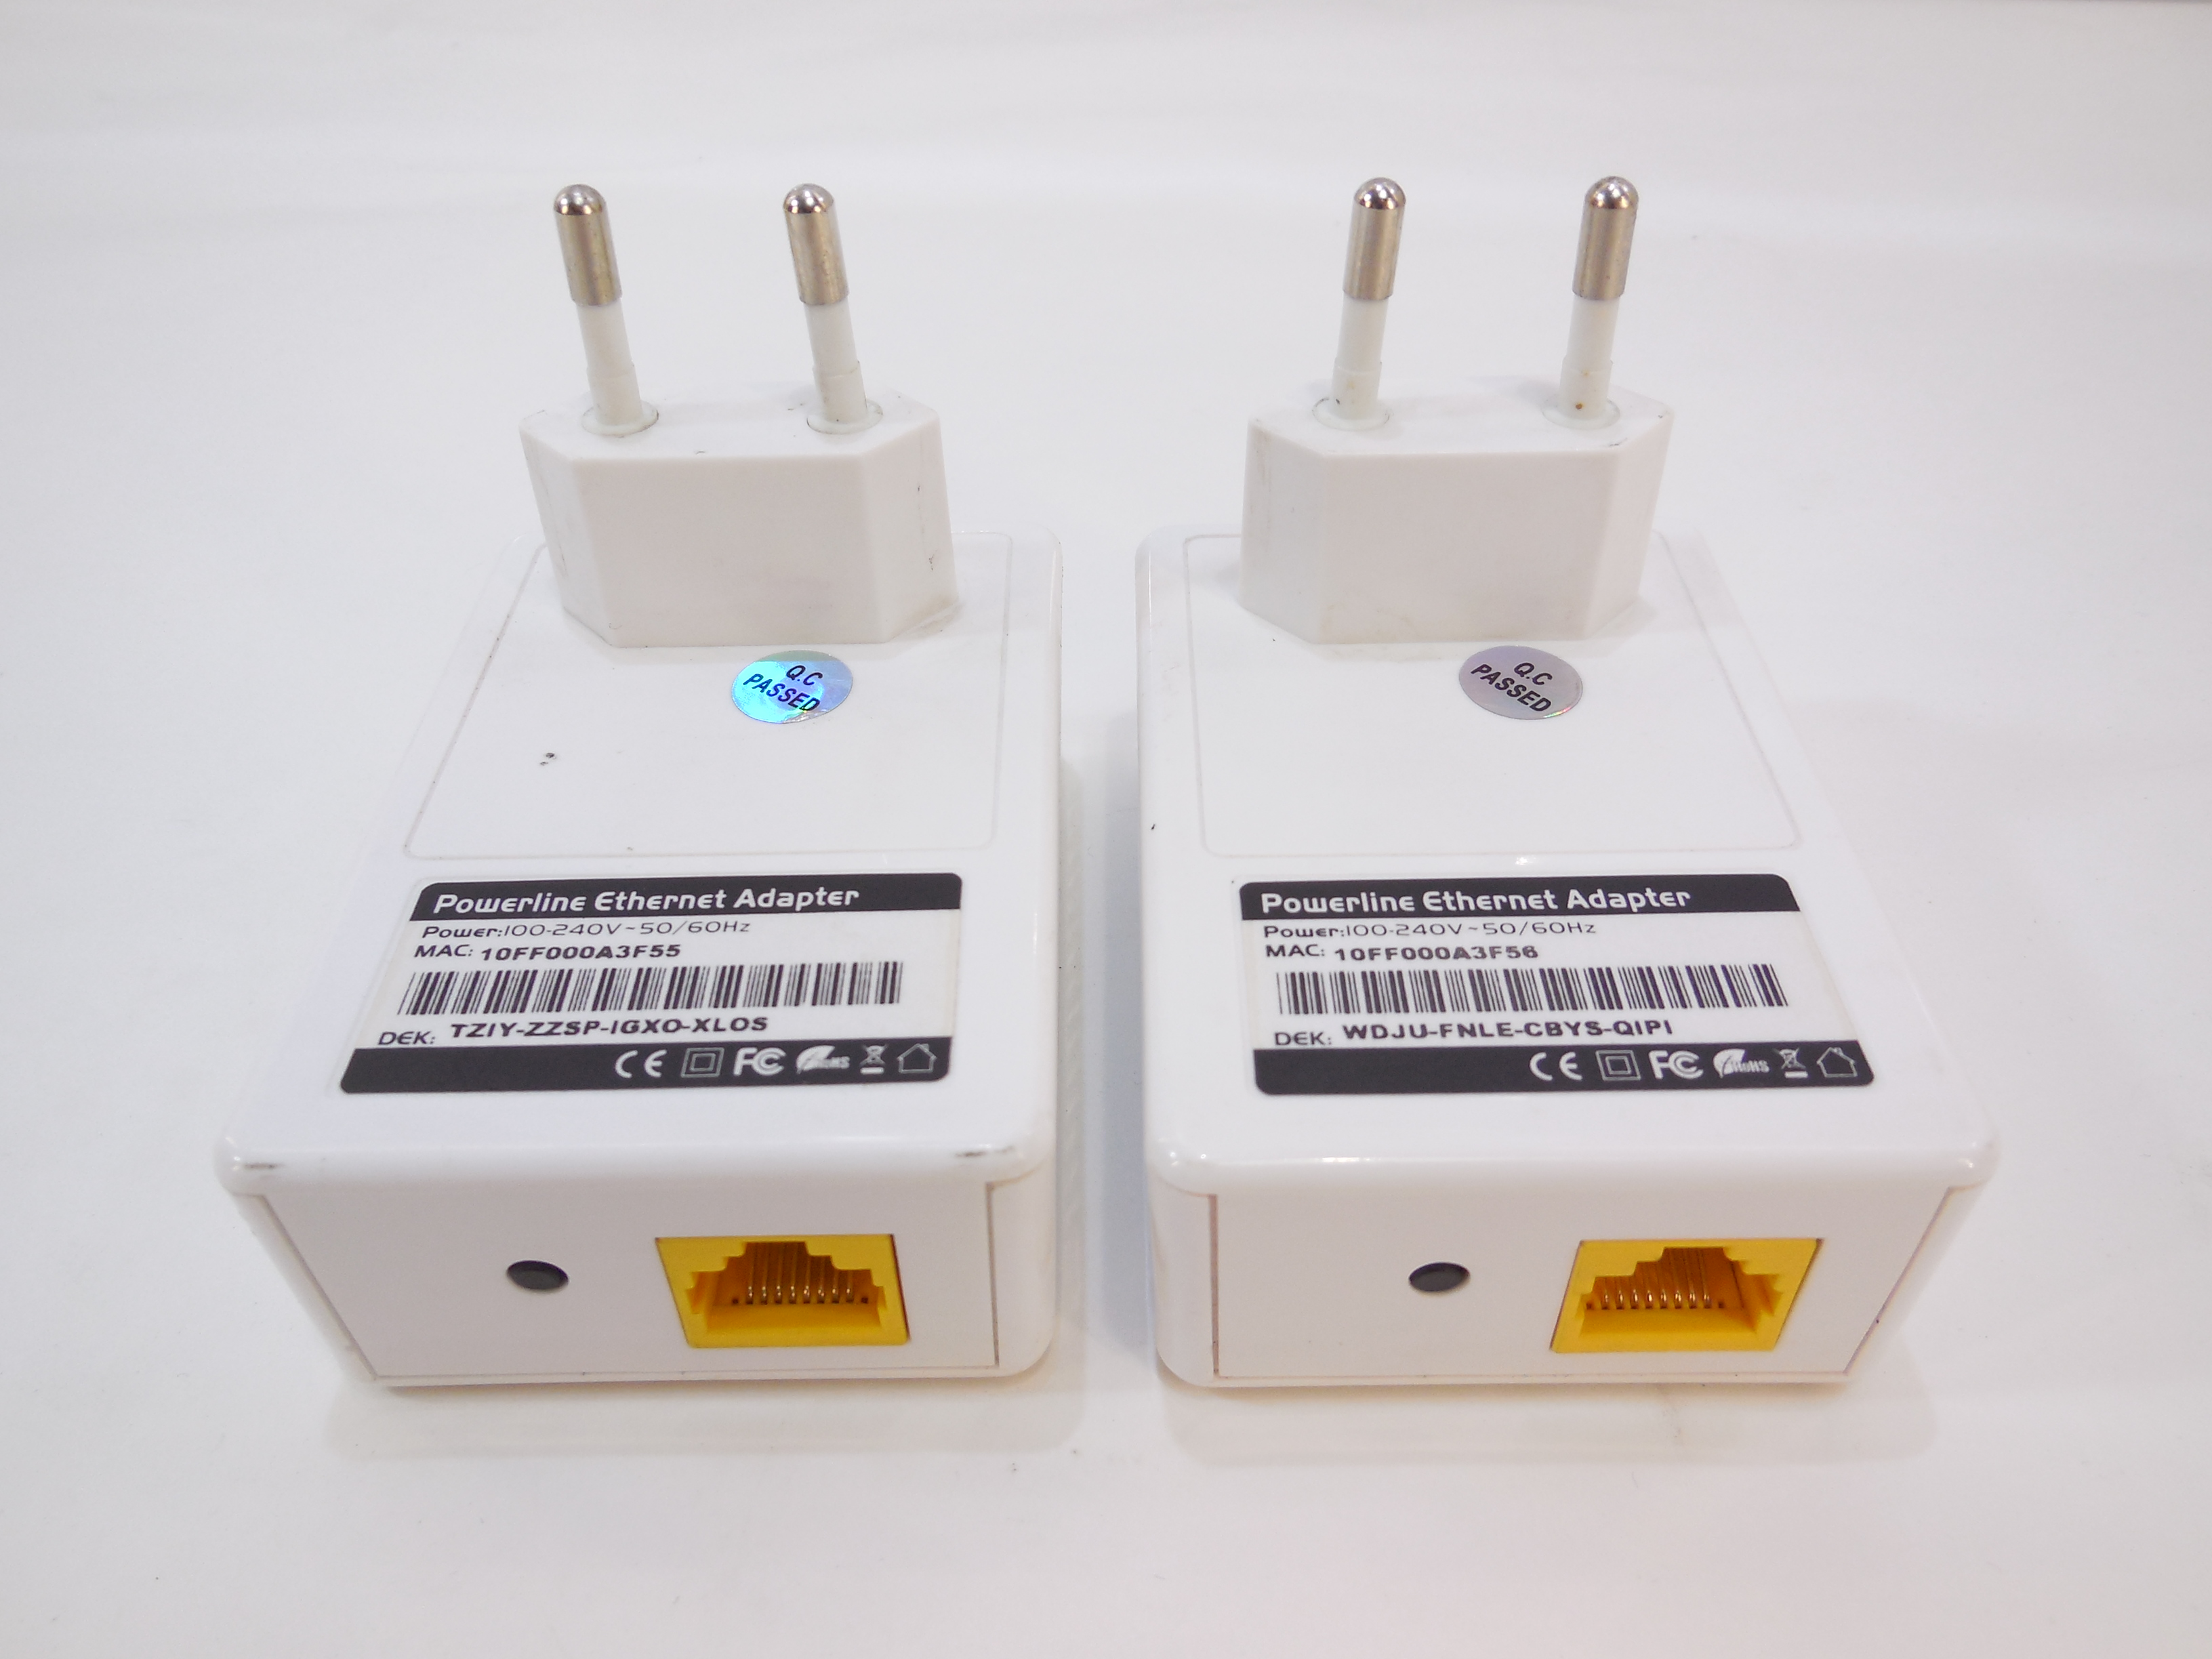 Home Plug — Mini PowerLine Ethernet Adapter 200Mbp - Pic n 280285